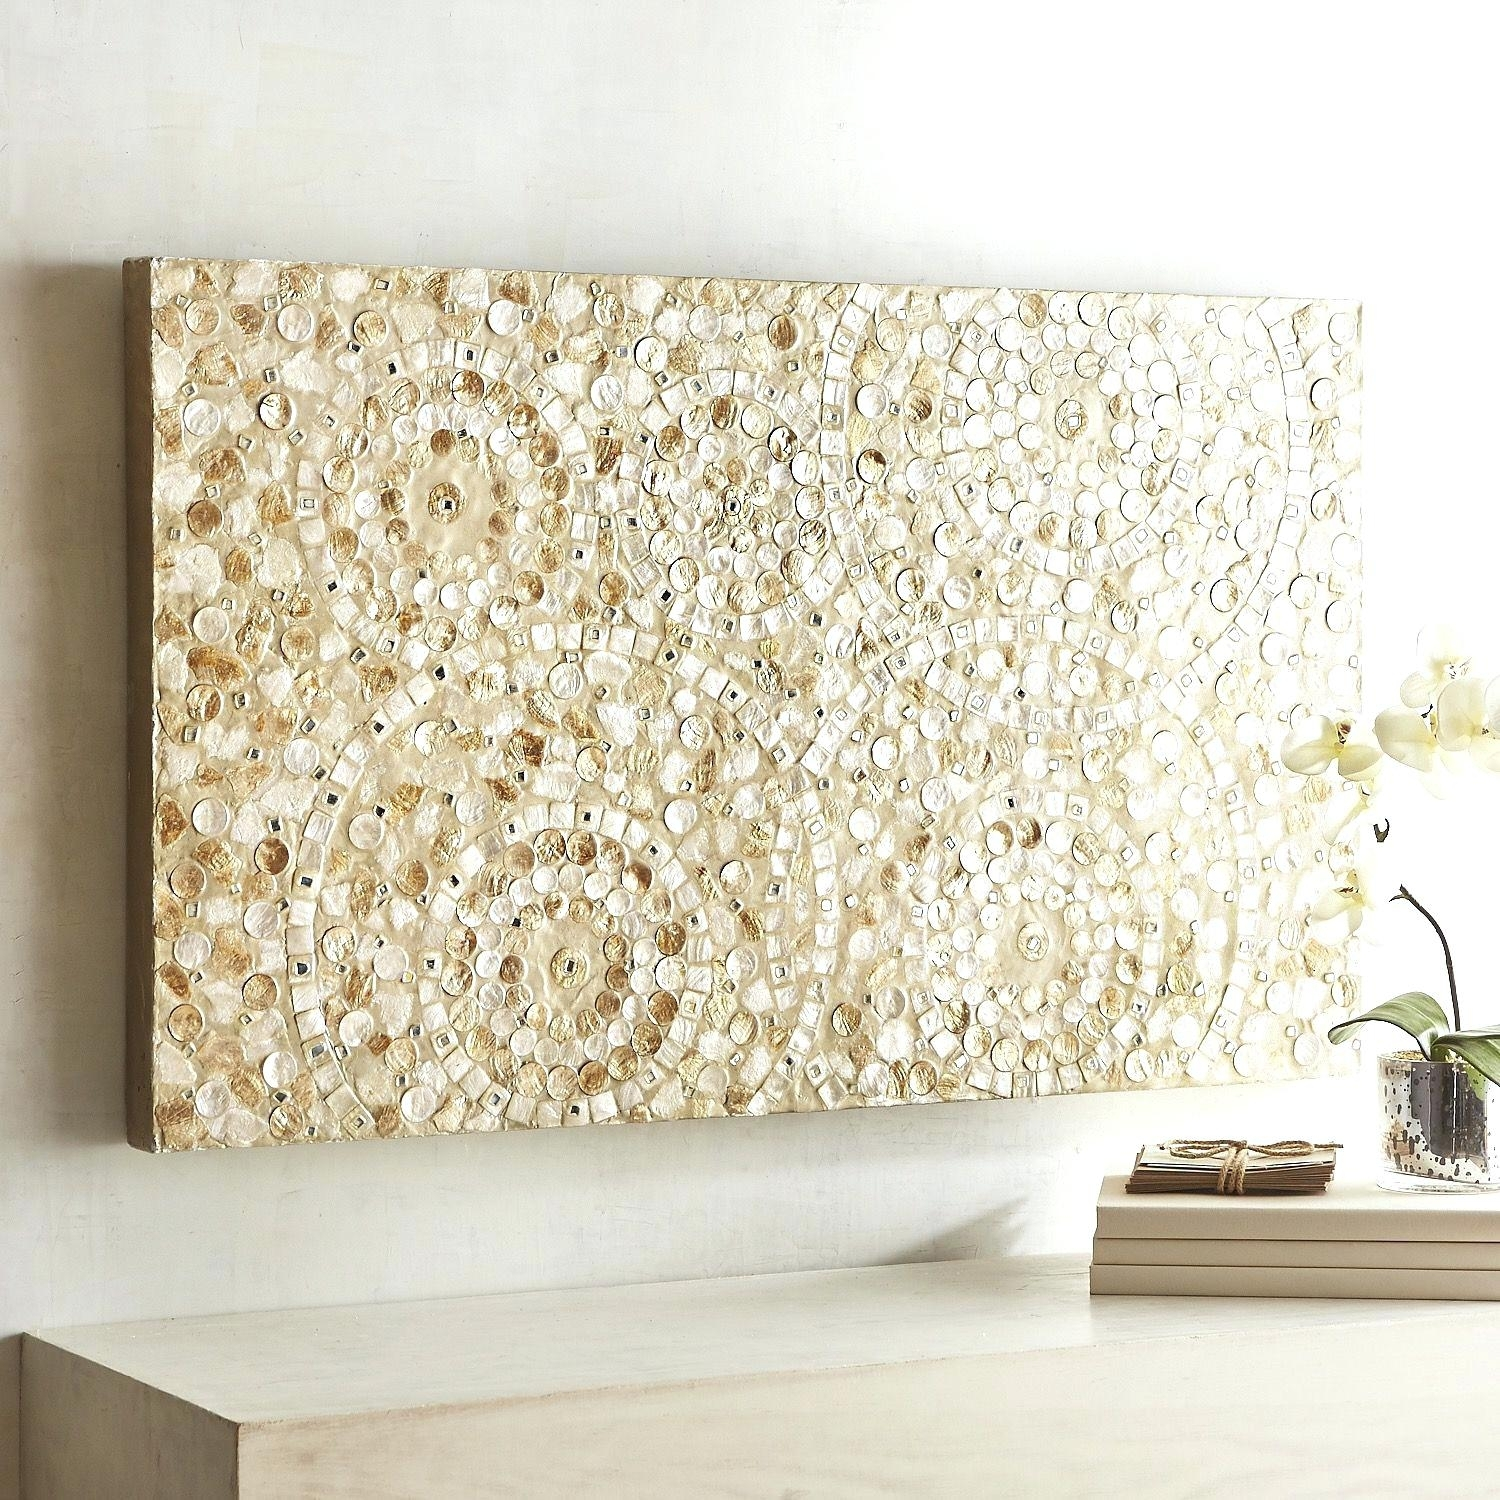 Enjoyable Design Ideas Capiz Wall Art Com Shell Fish Bowl Flower Intended For Newest West Elm Wall Art (View 10 of 20)